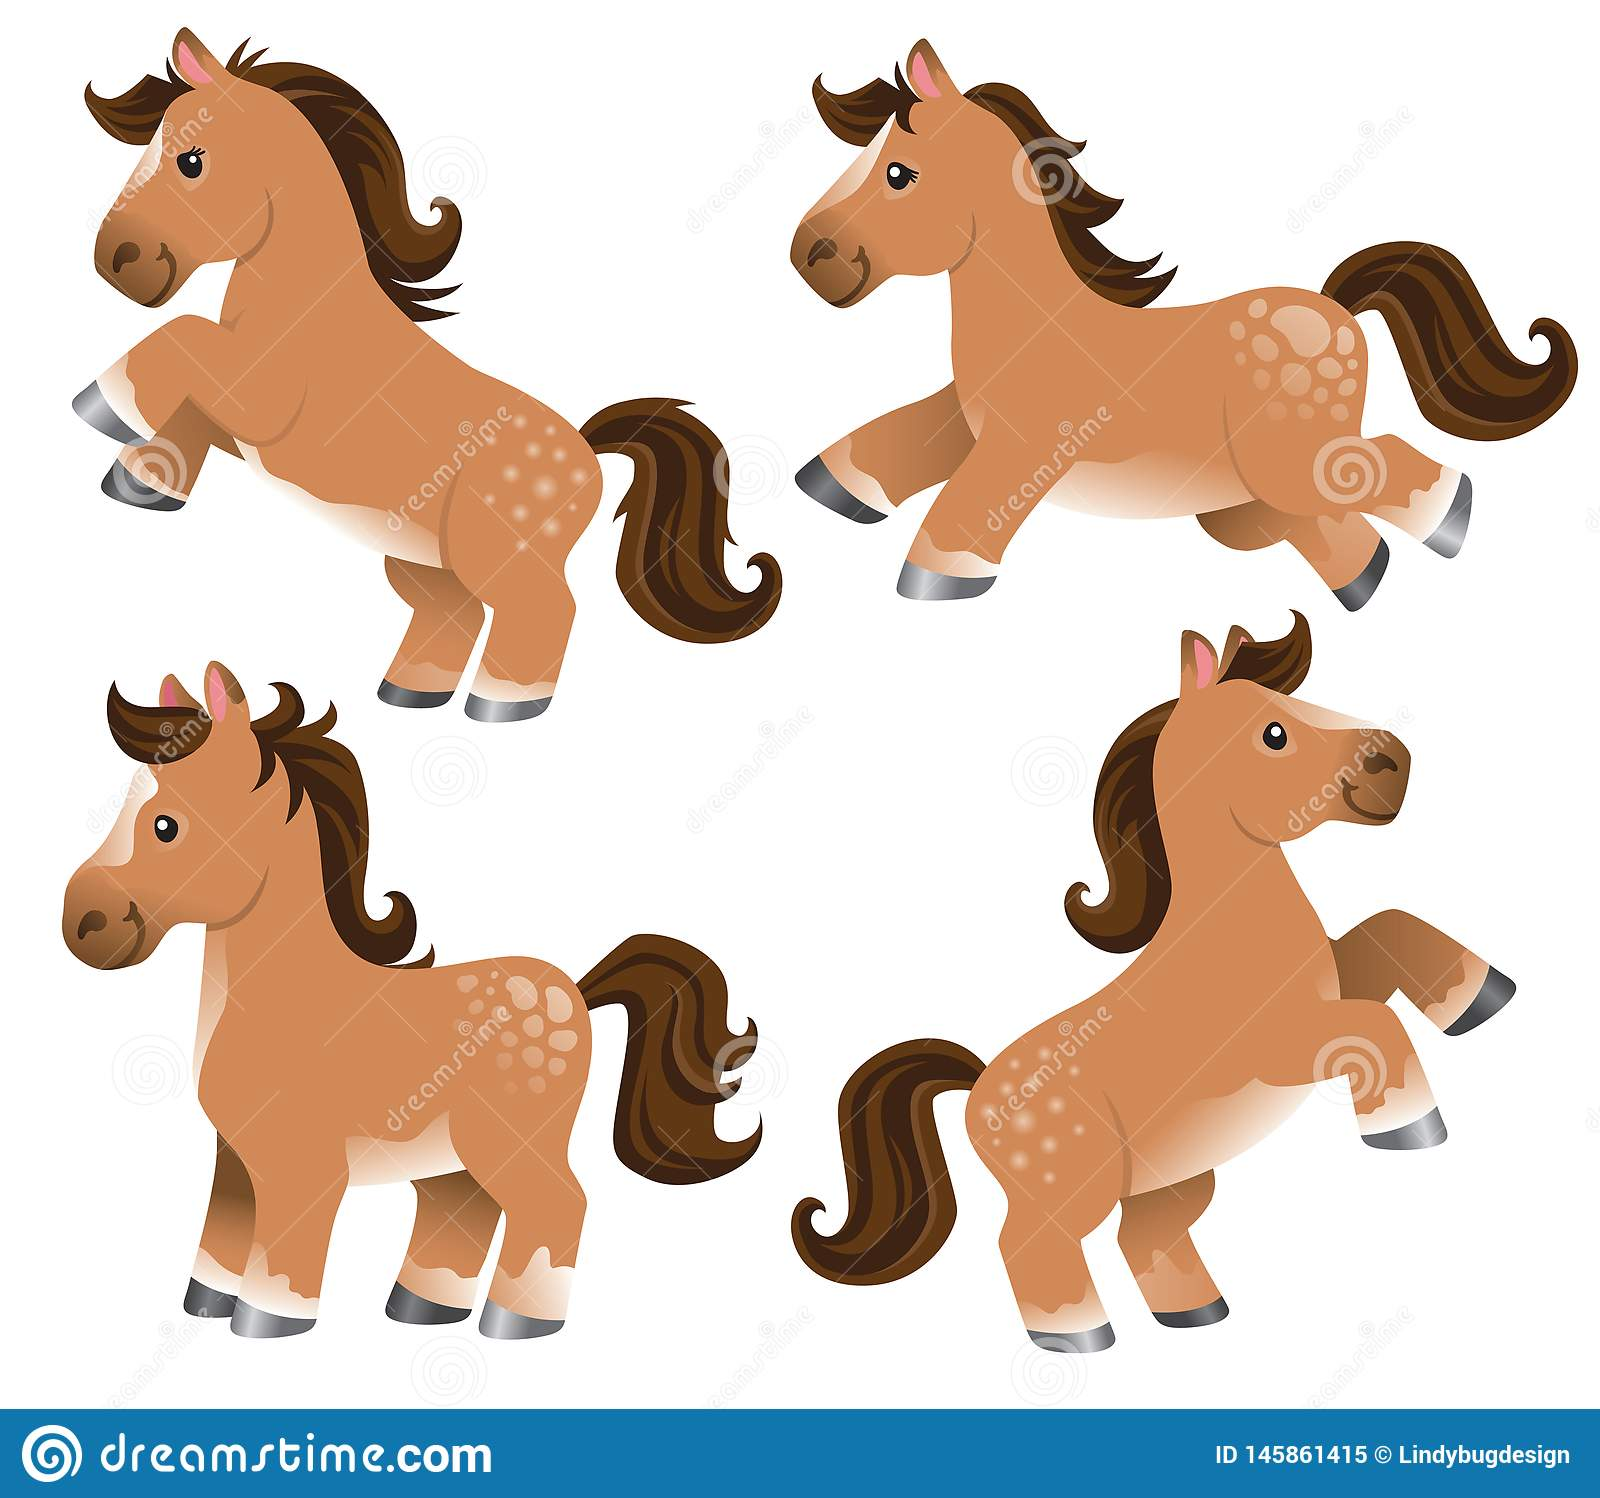 Cartoon Horses Stock Illustrations 3 402 Cartoon Horses Stock Illustrations Vectors Clipart Dreamstime